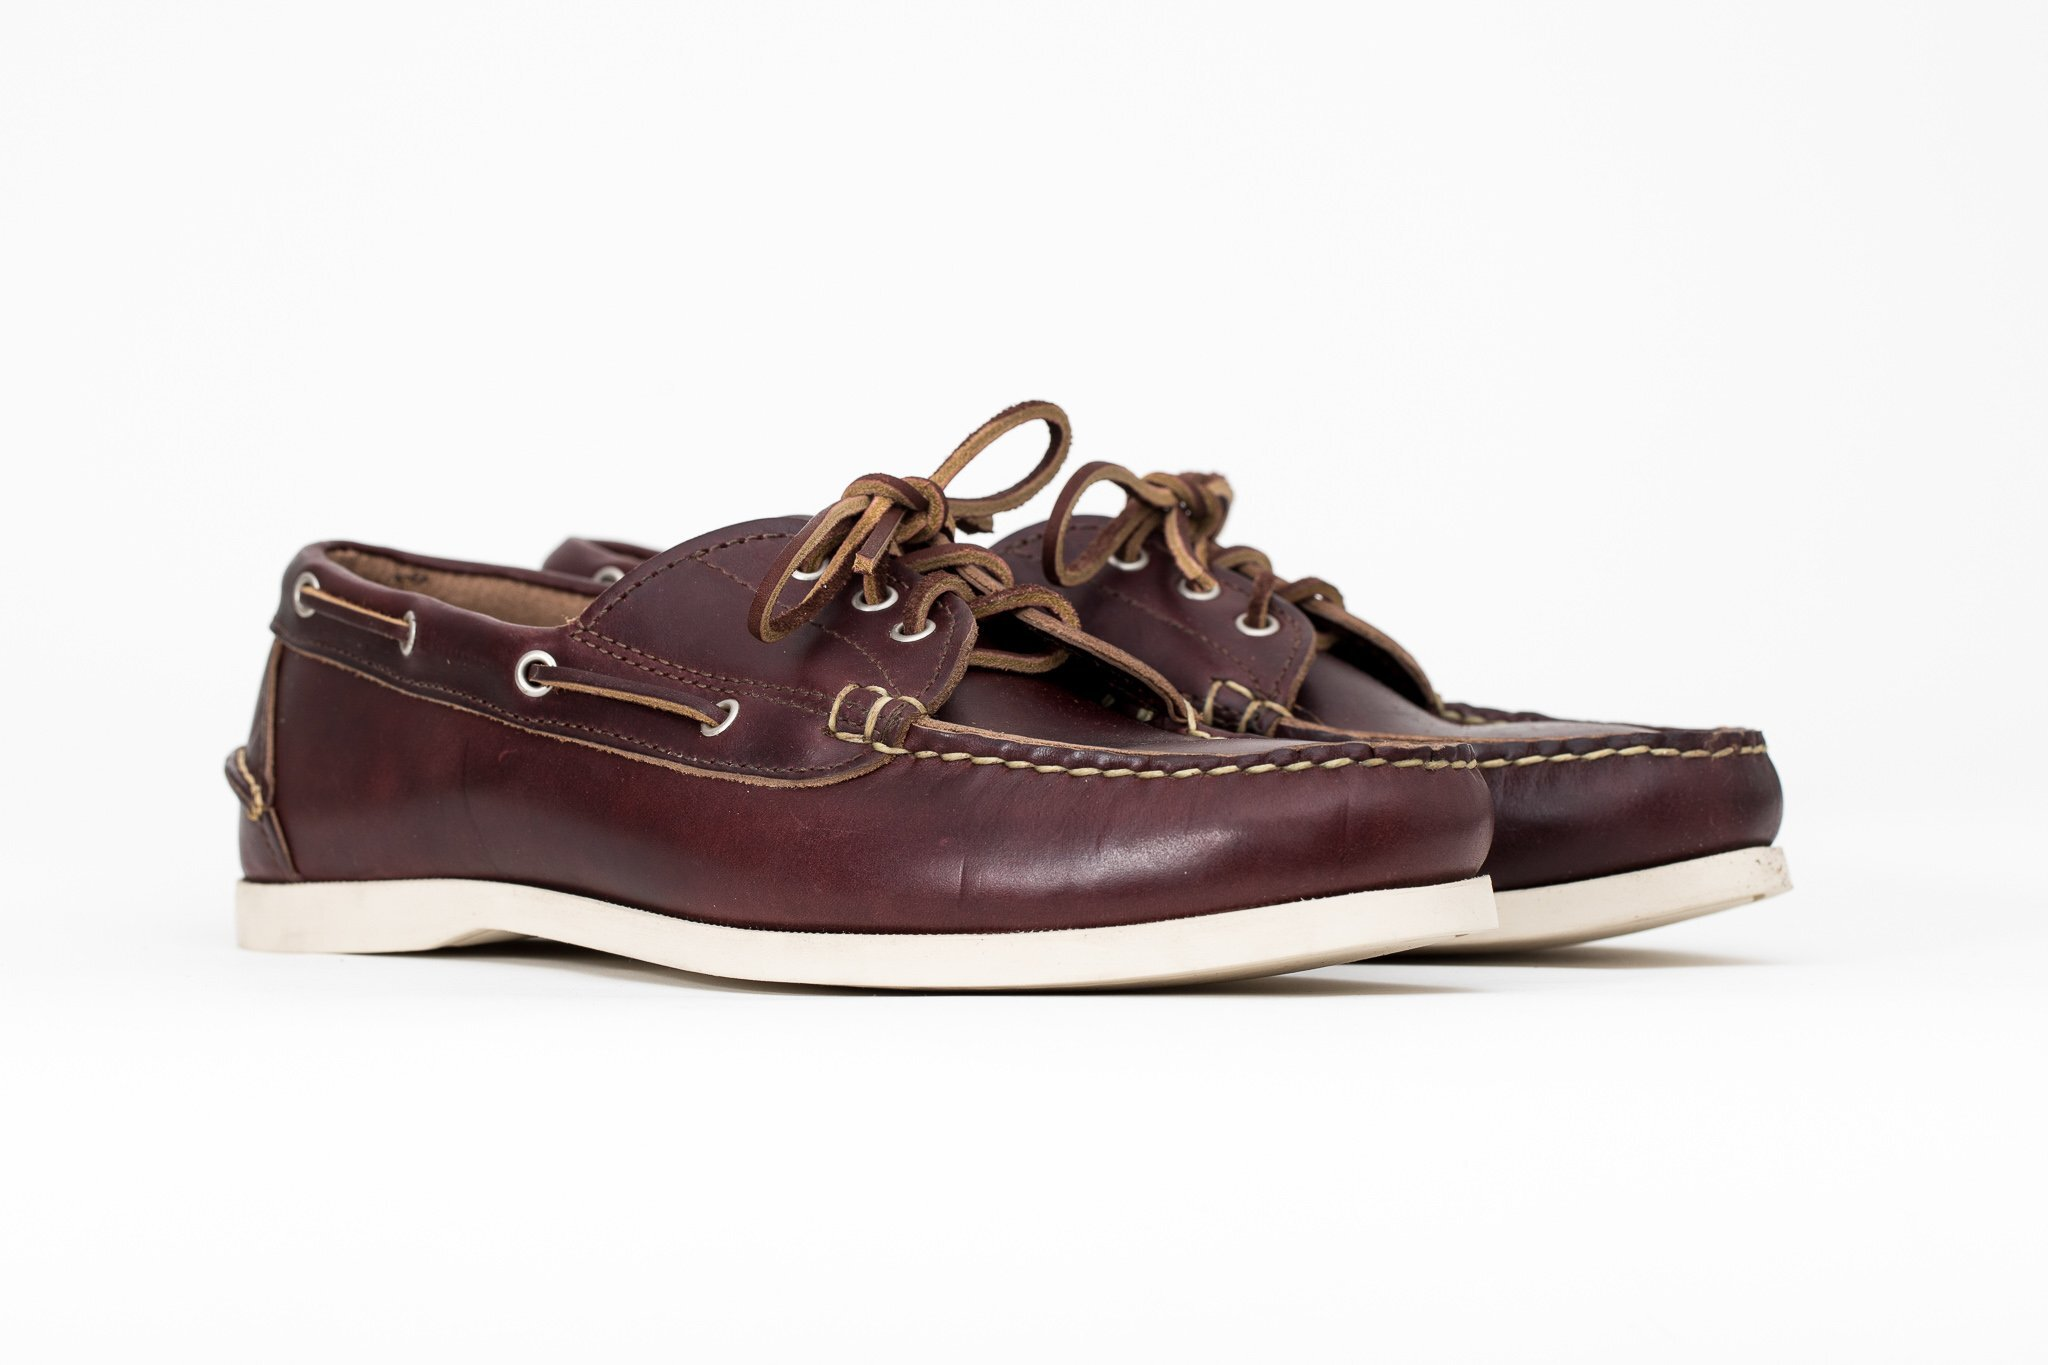 Maine Mountain Moccasin true maine boat shoe